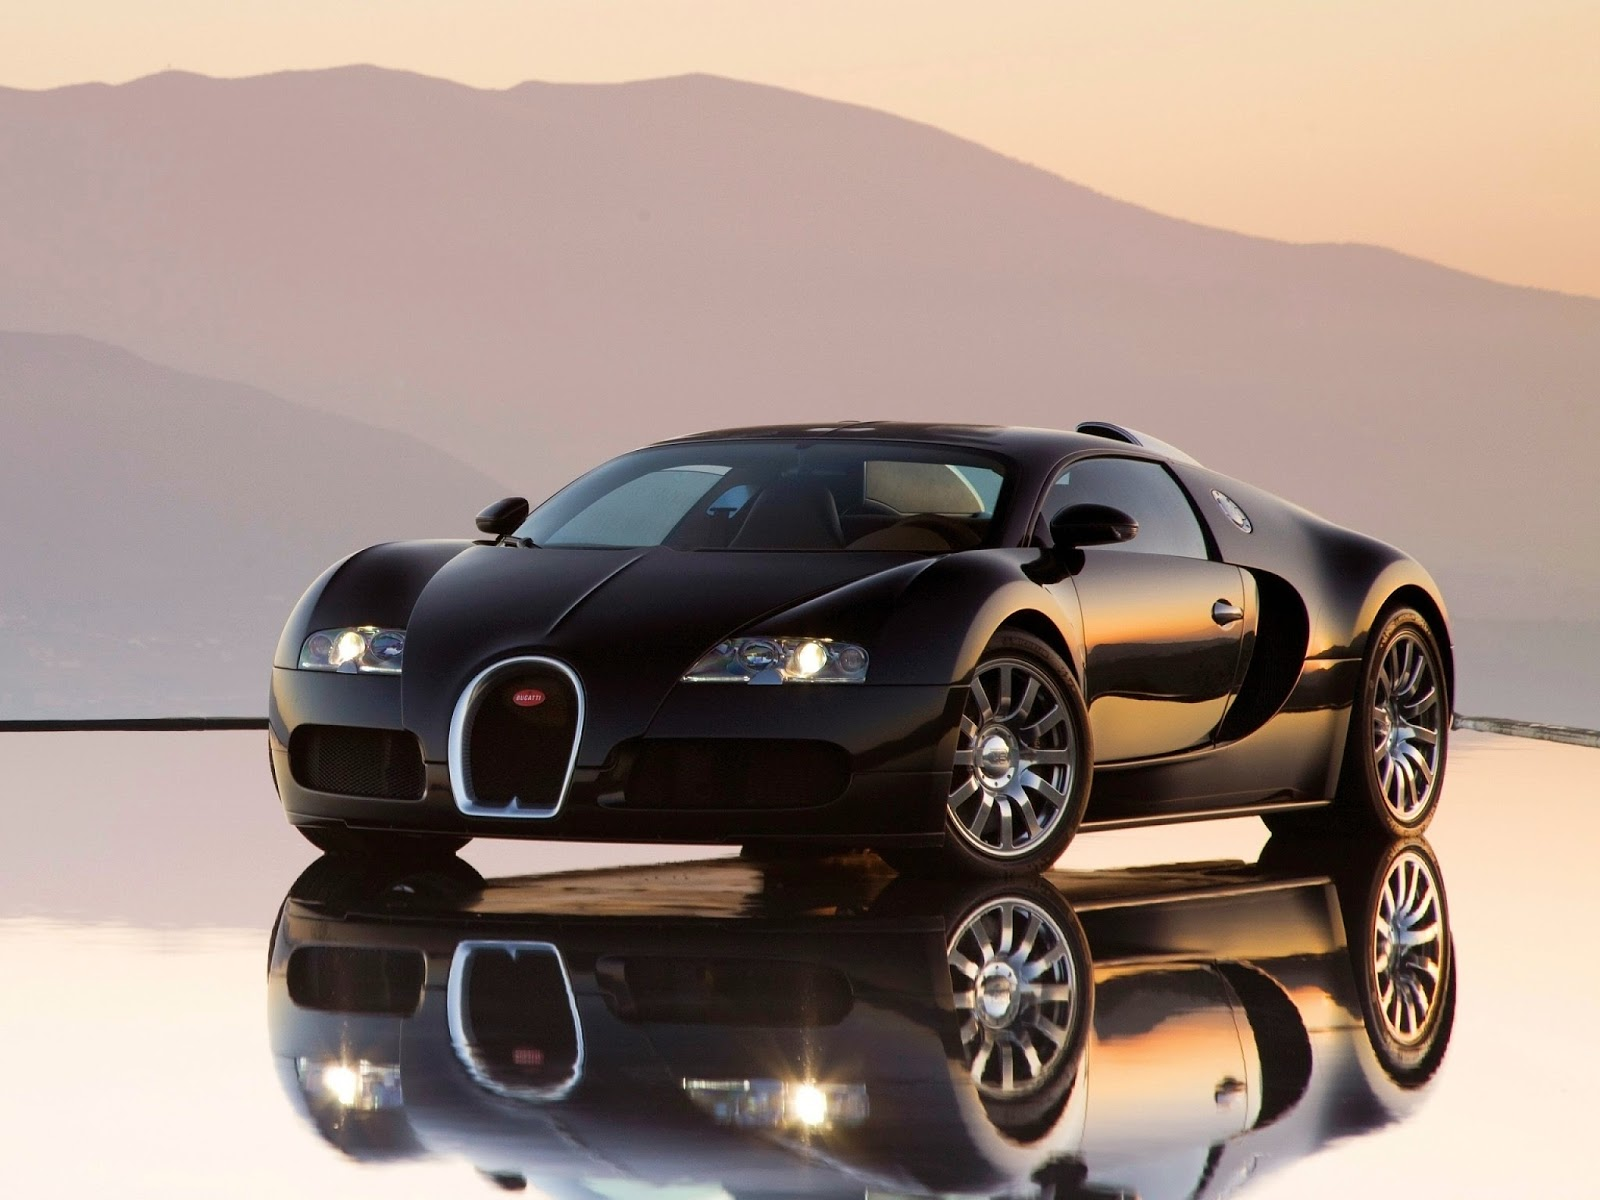 bugatti bugatticars automobile salon geneve l partie article de au diamond ve gen